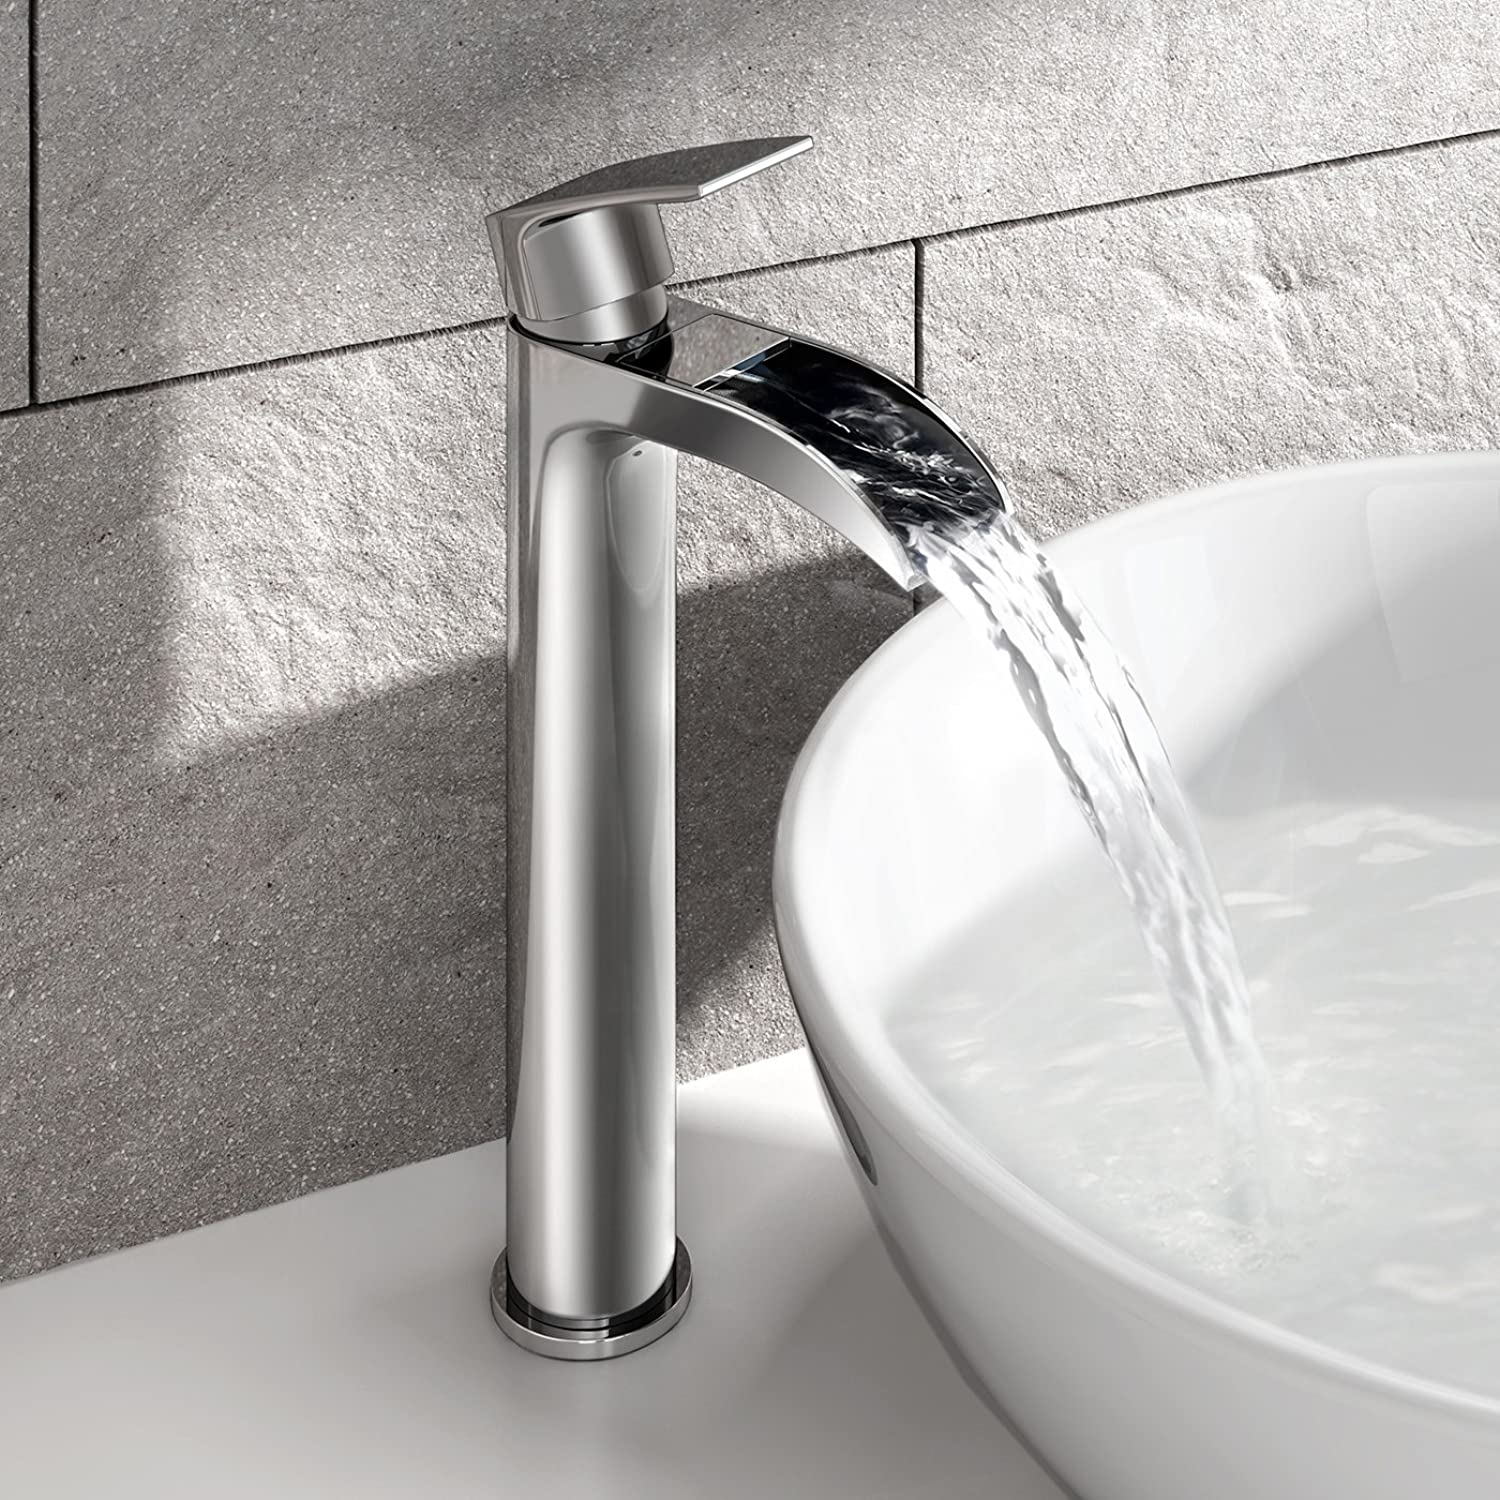 Tall Waterfall Counter Top Basin Mixer Tap Curved Bathroom Sink Faucet TB3154